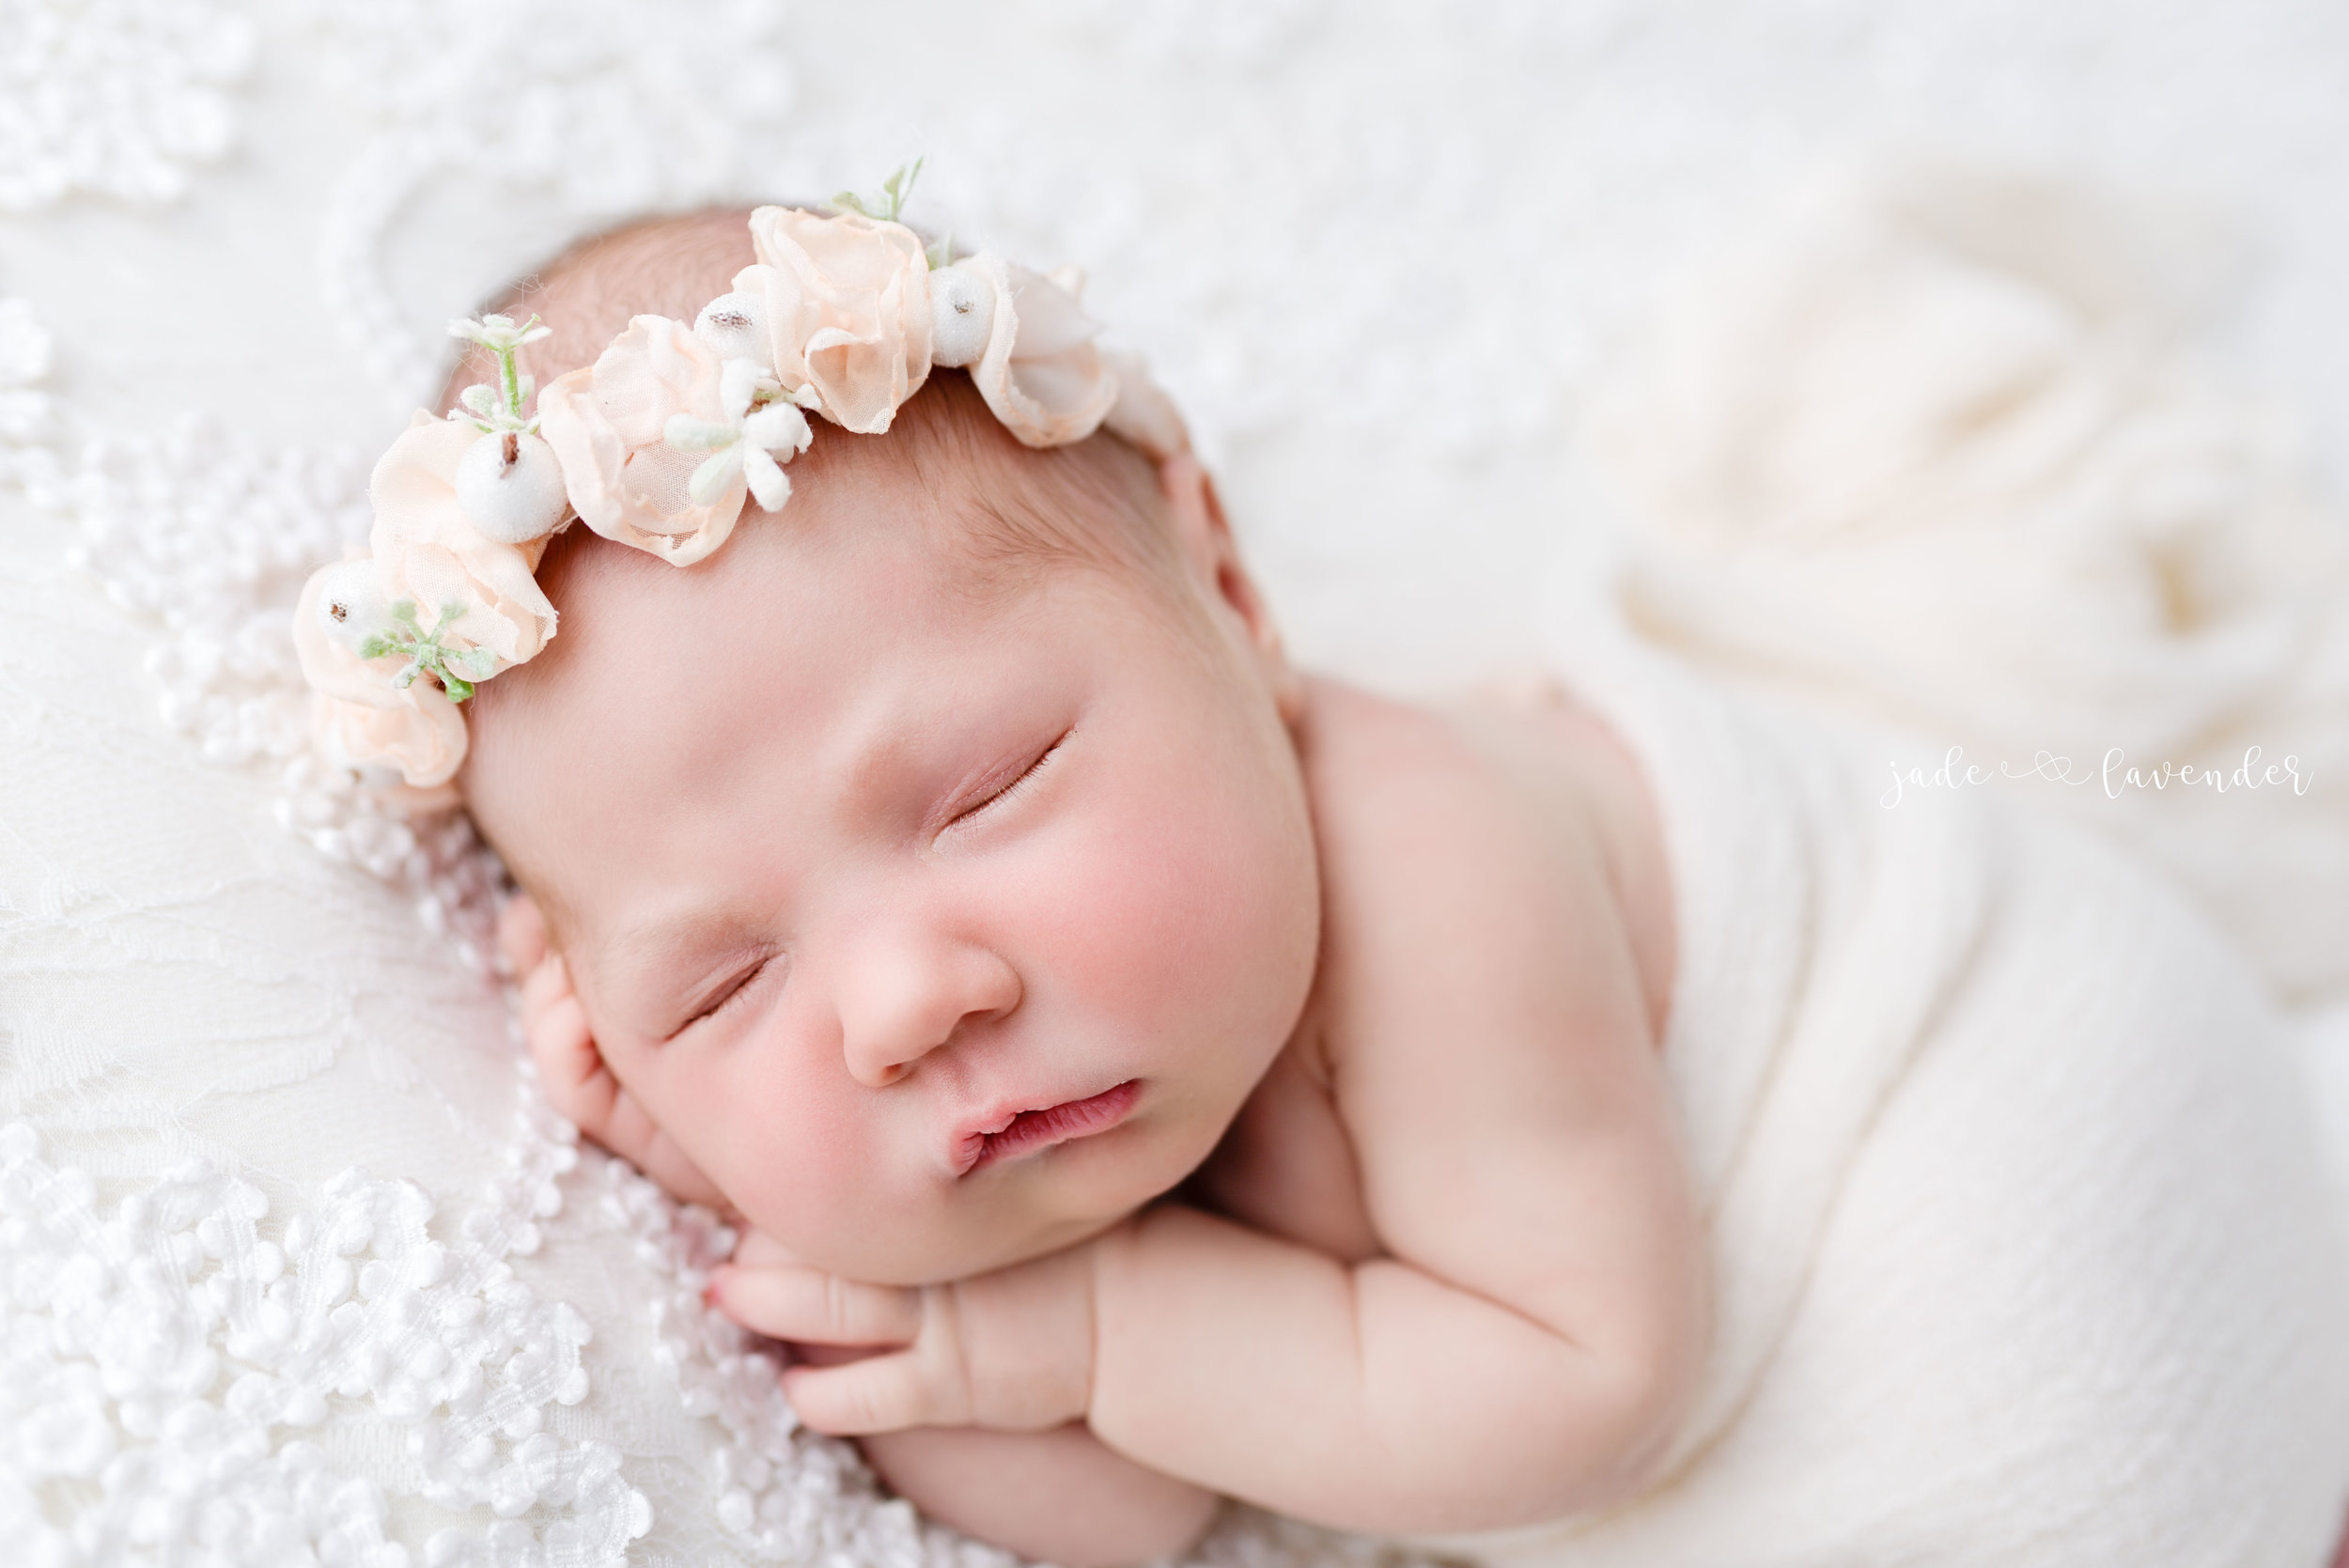 newborn-photography-baby-images-infant-photos-girl-floral-spokane-washington (2 of 6).jpg